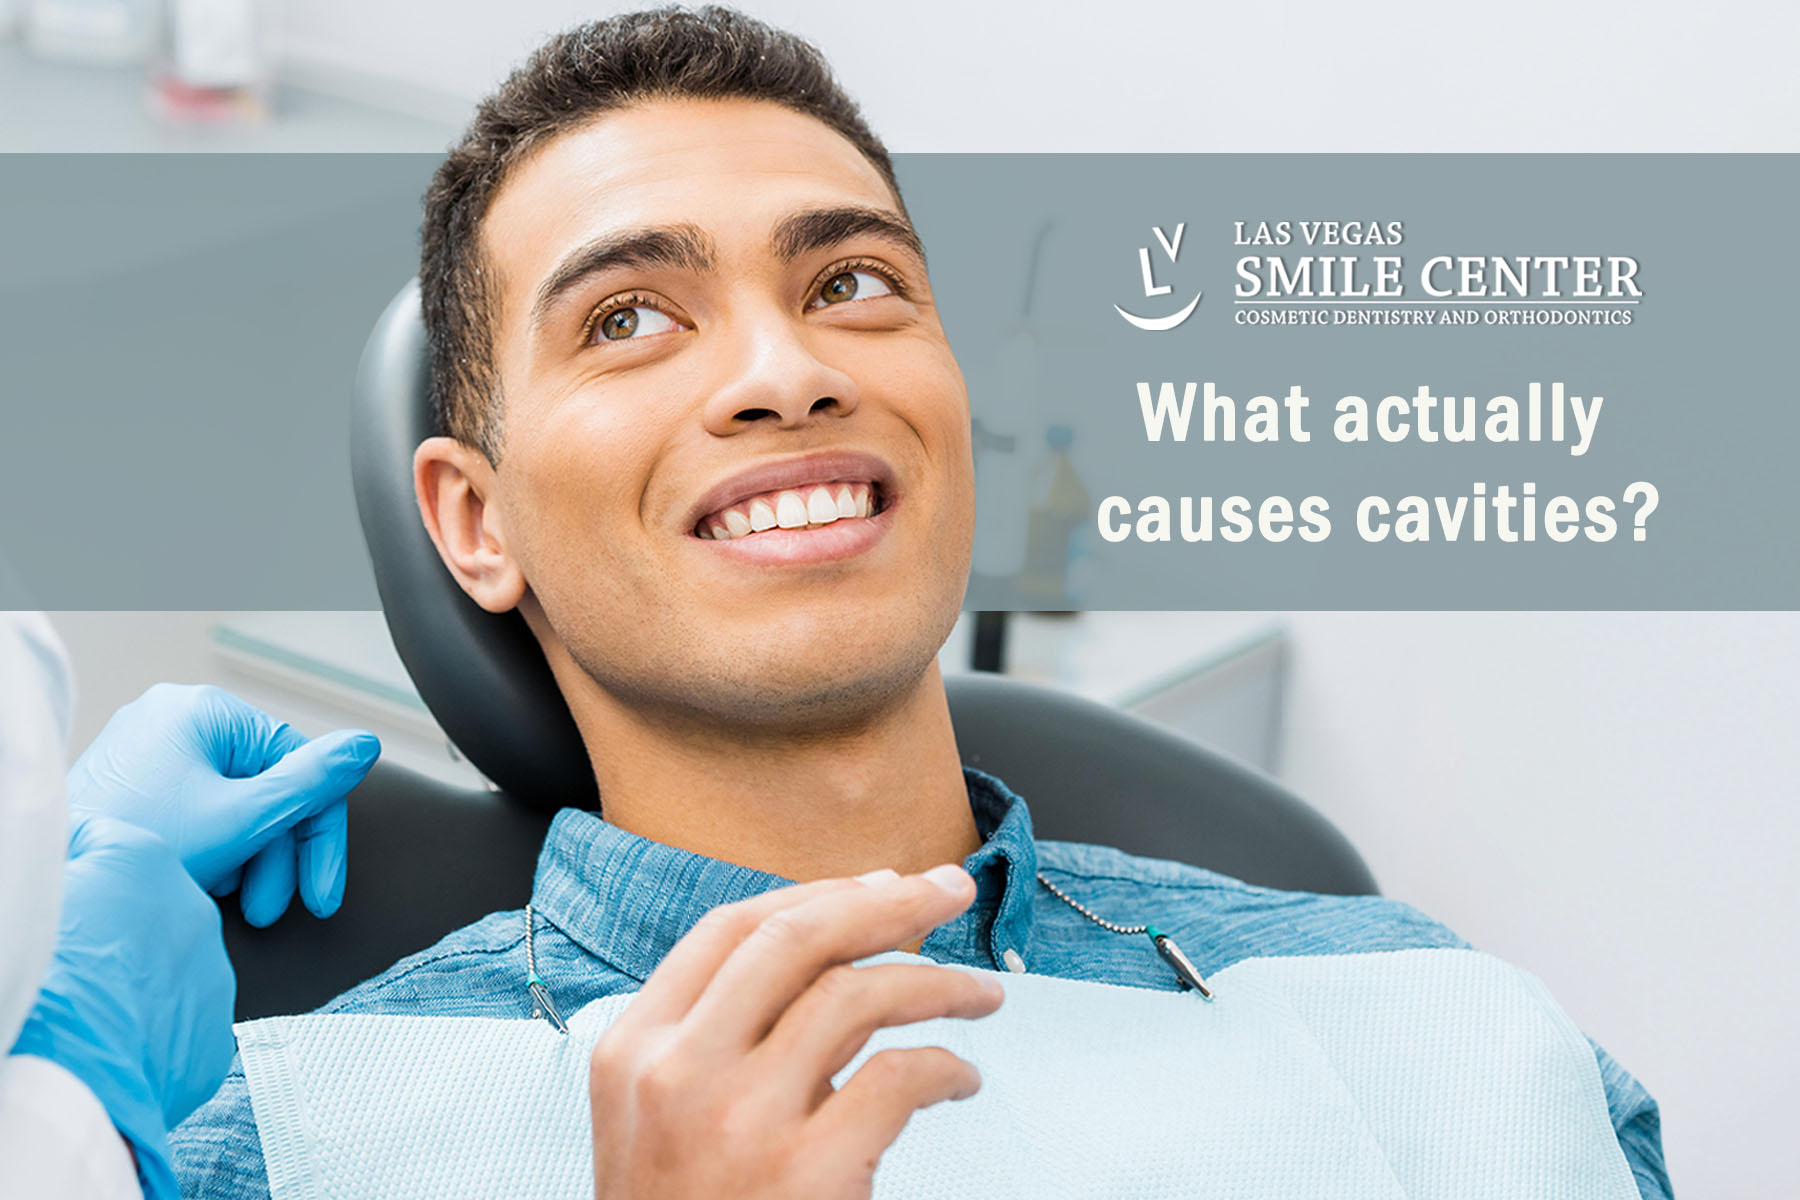 Dentist Las Vegas Smile - What causes cavities